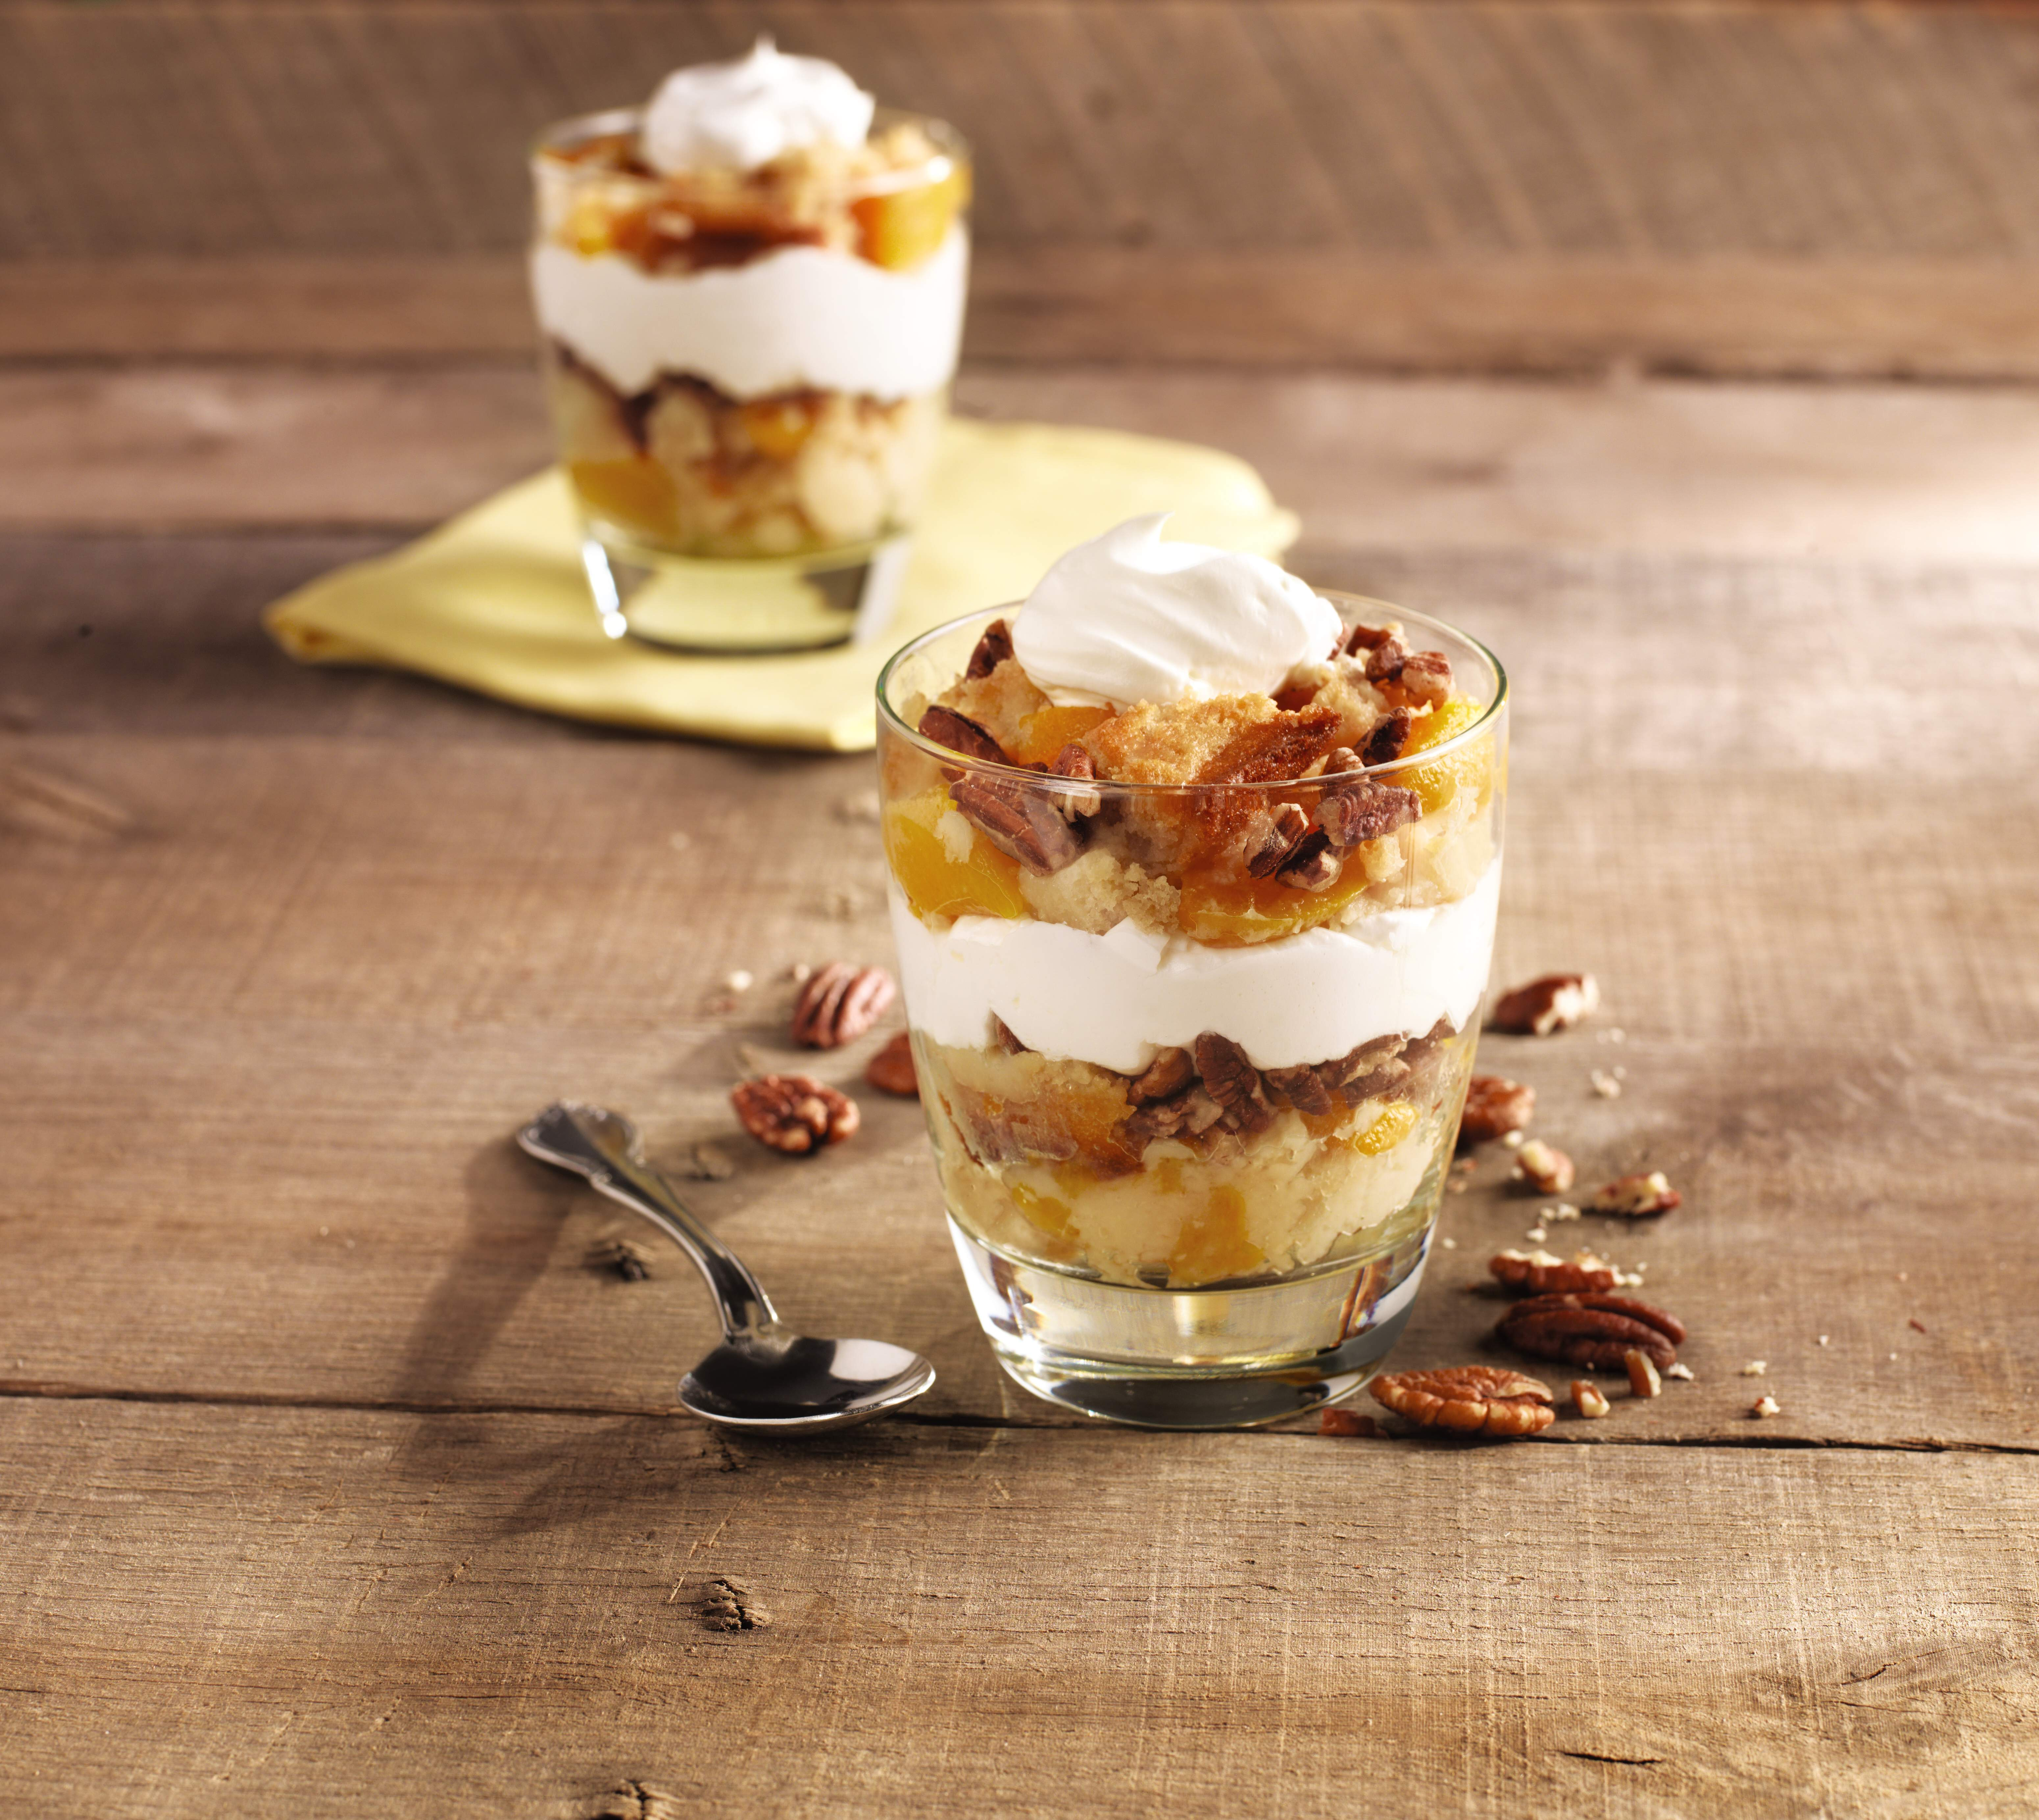 Peach cobbler parfait with nuts and whipped cream.